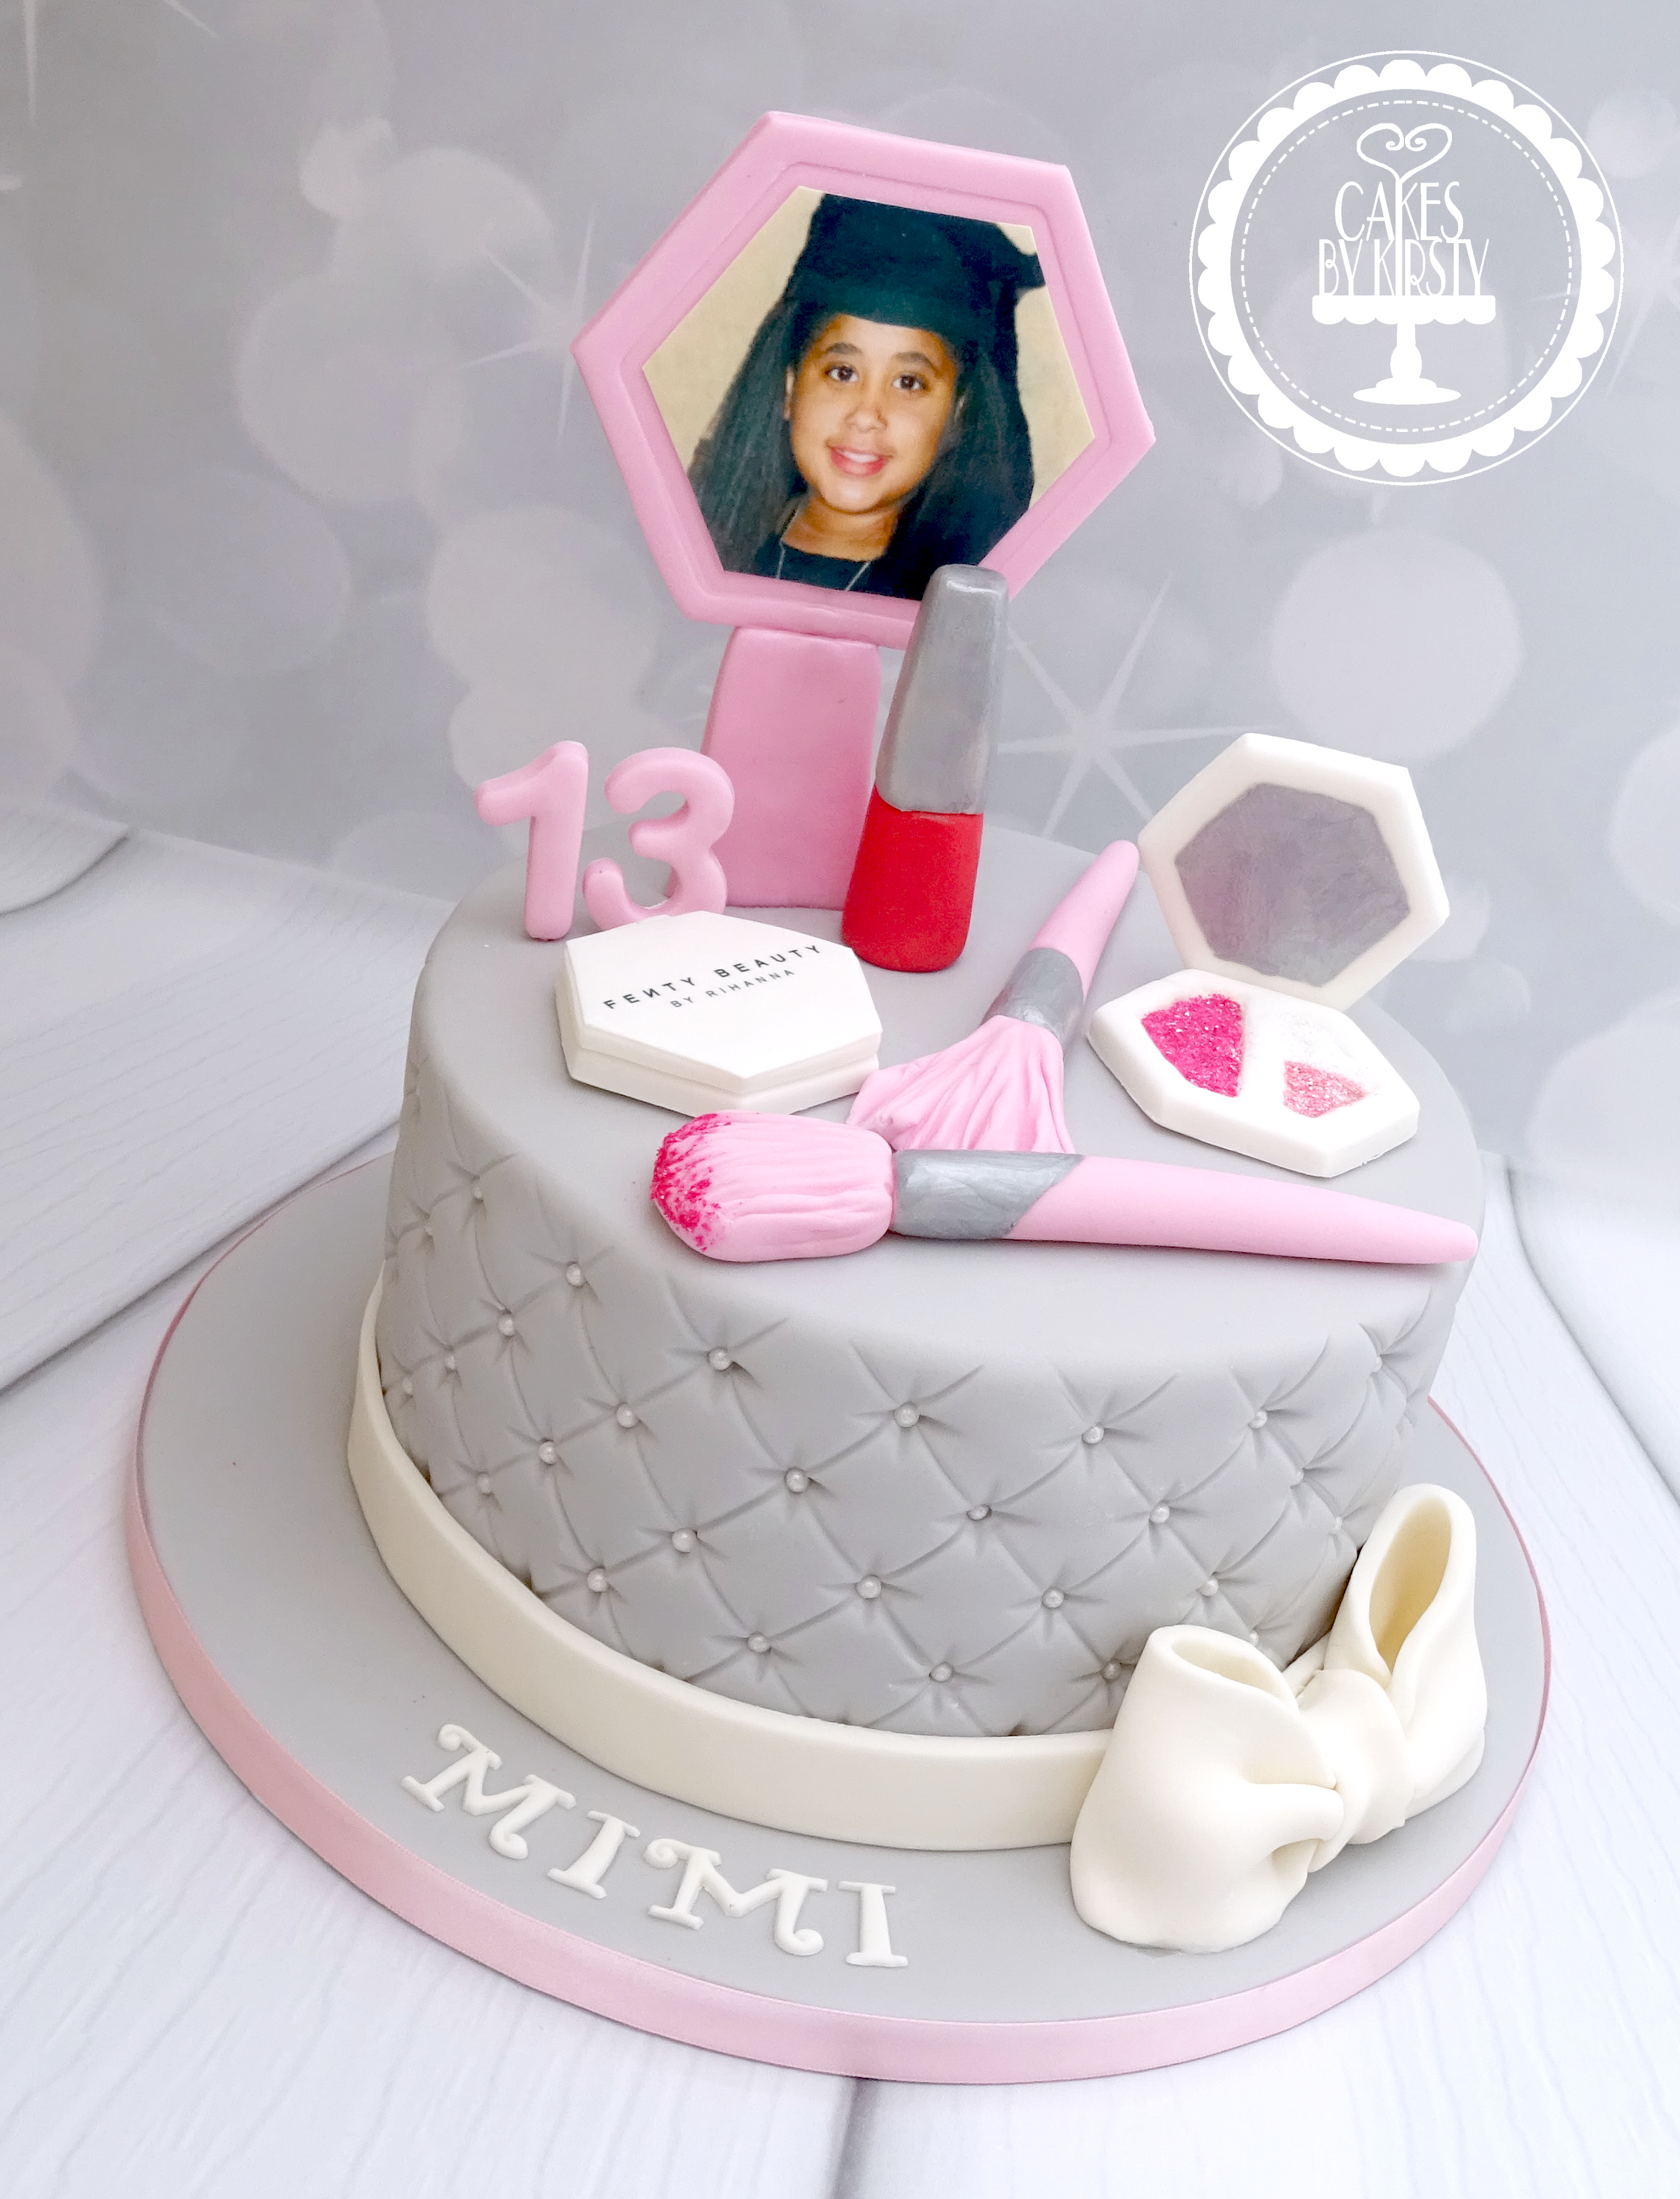 Fabulous Cakes By Kirsty Childrens Cakes Funny Birthday Cards Online Unhofree Goldxyz